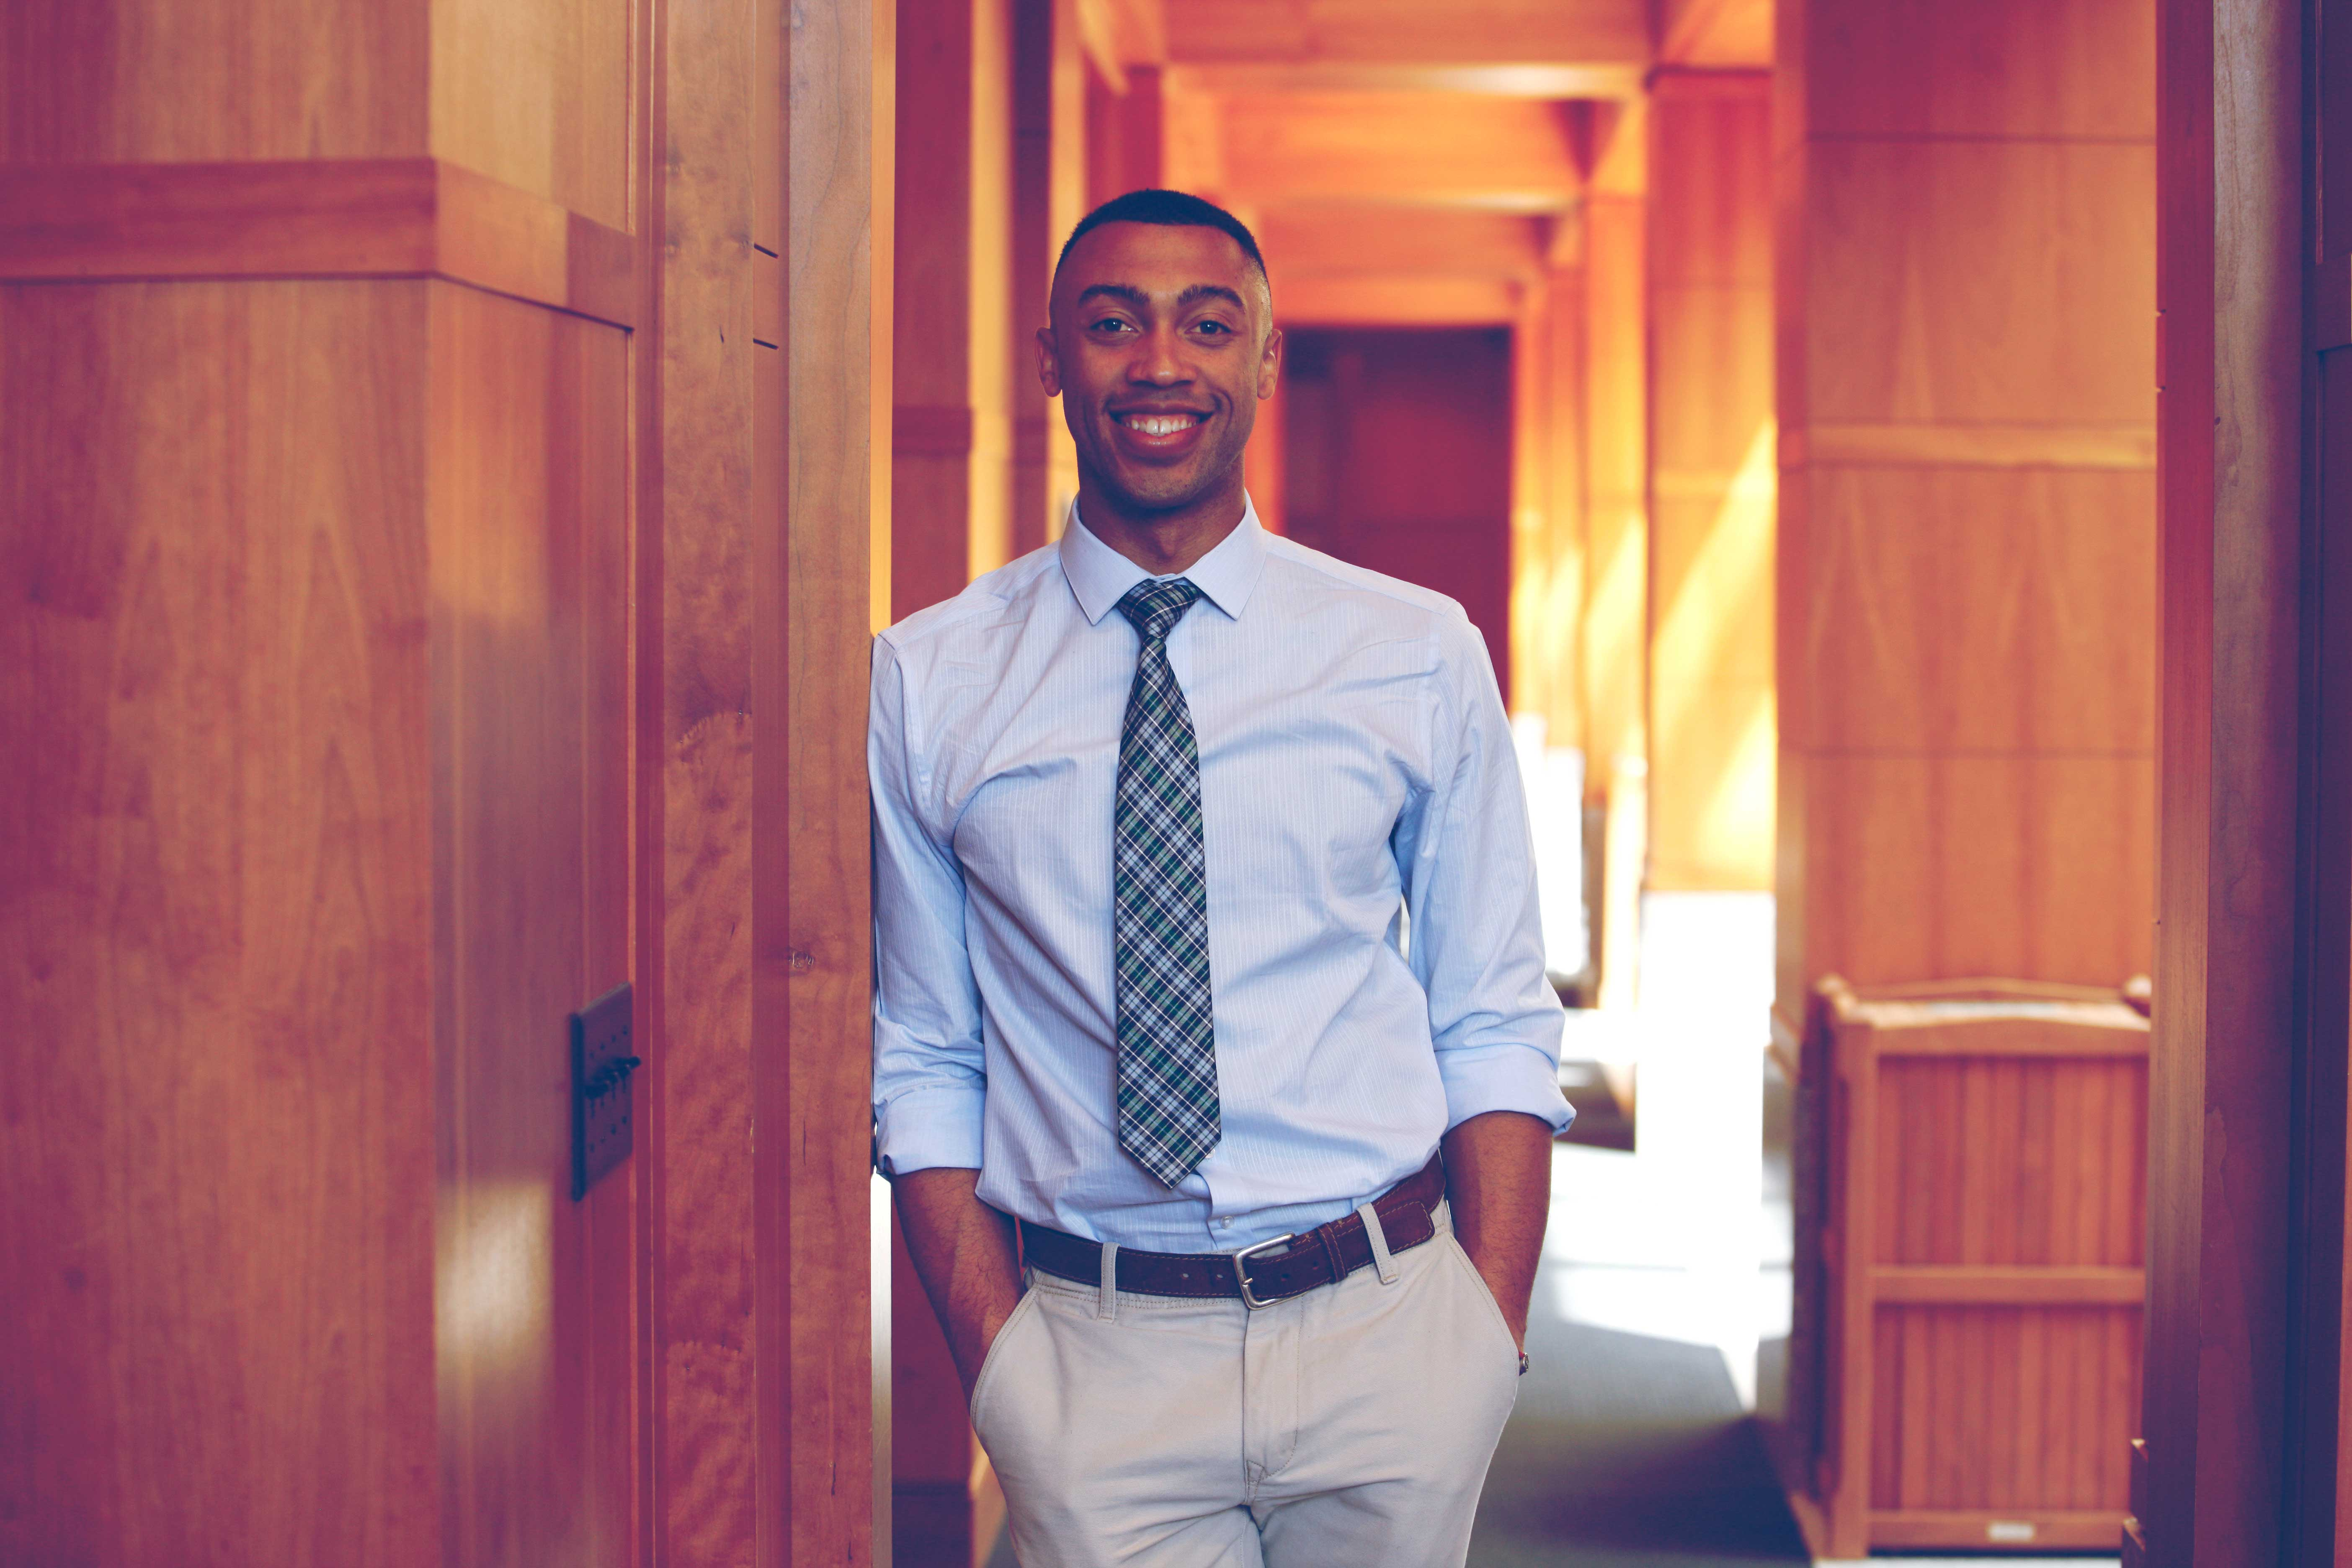 Zachary Ray plans to clerk for two federal judges after graduation, but ultimately has his sights set on trial advocacy.